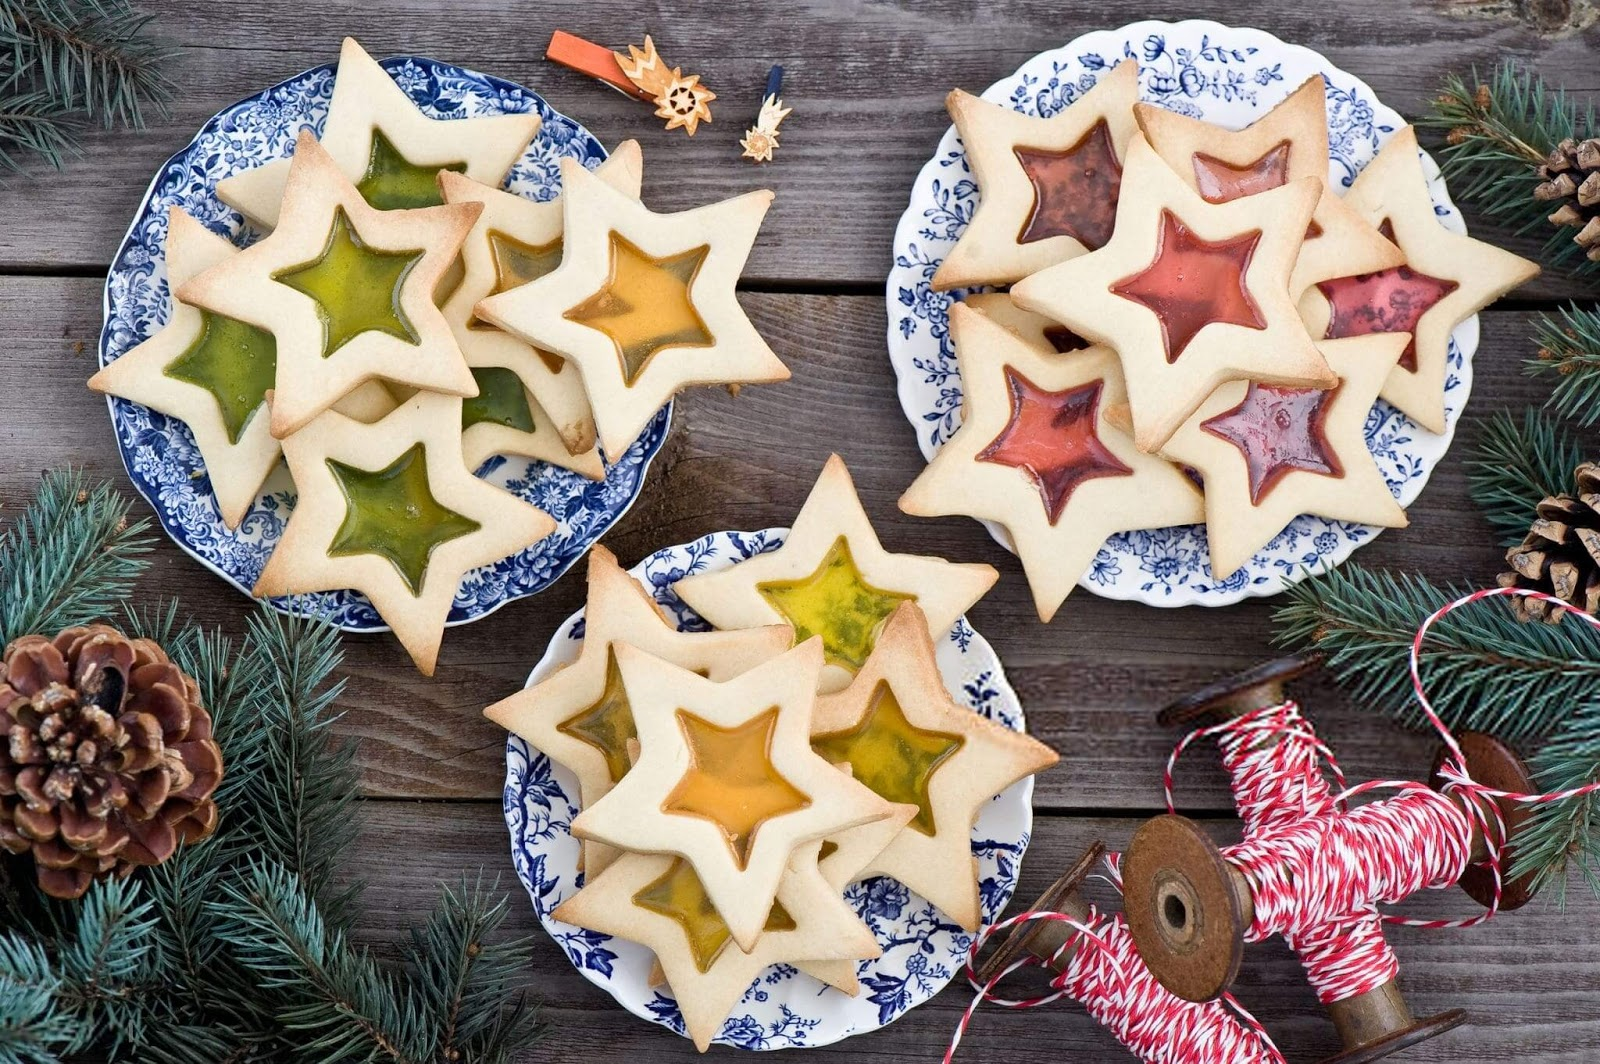 Pictures of Christmas Cookies